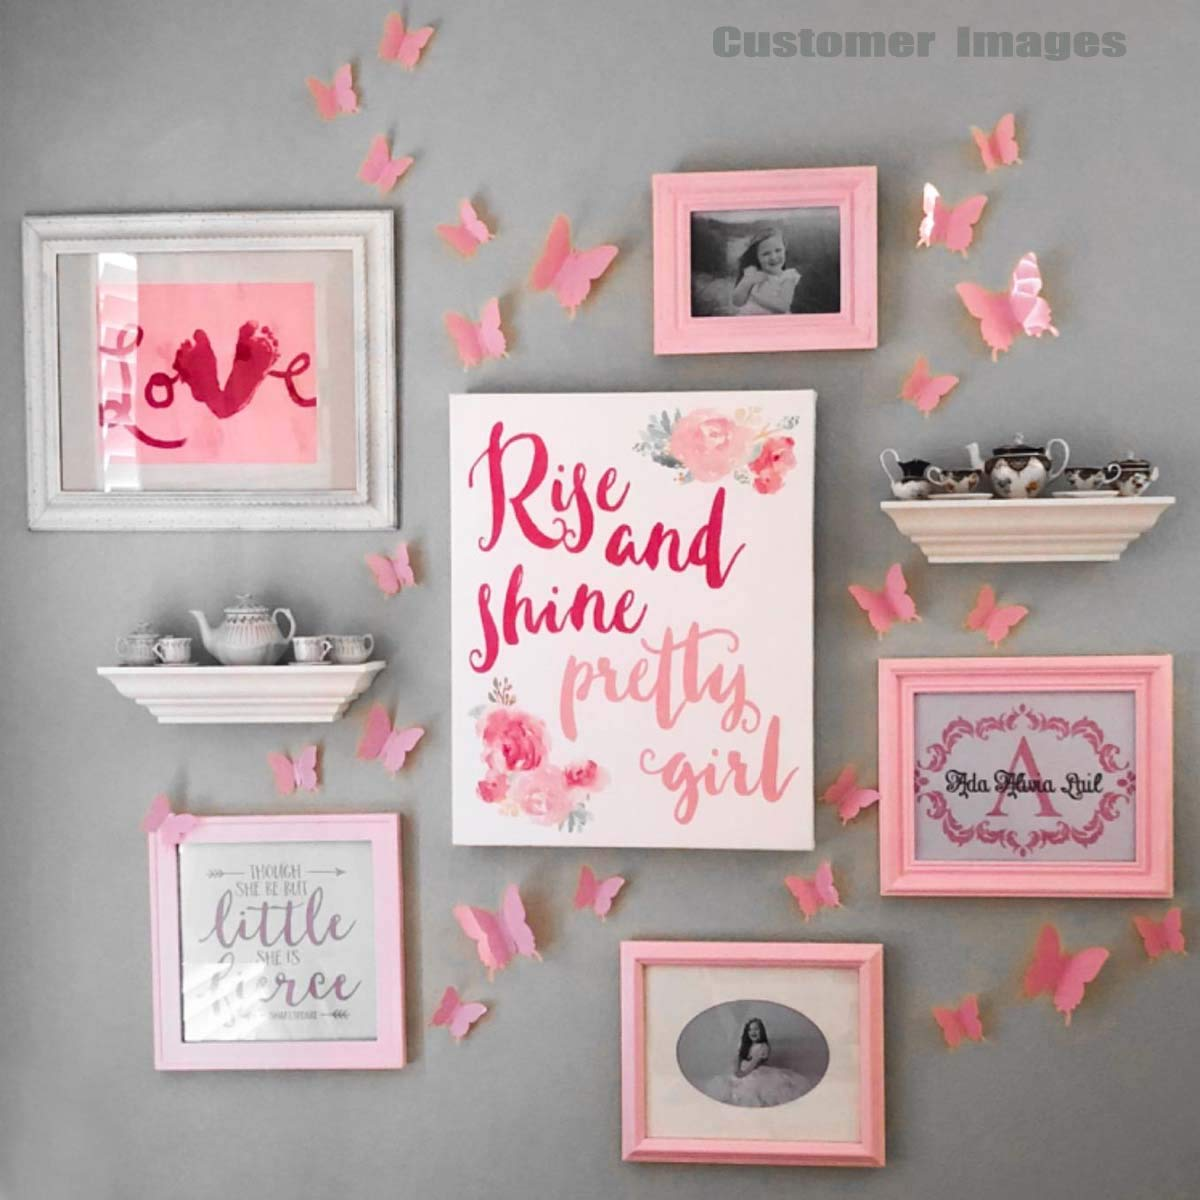 24Pcs 3D Butterfly Removable Mural Stickers Wall Stickers Decal für Zuhause und Zimmer Decoration (Pink)